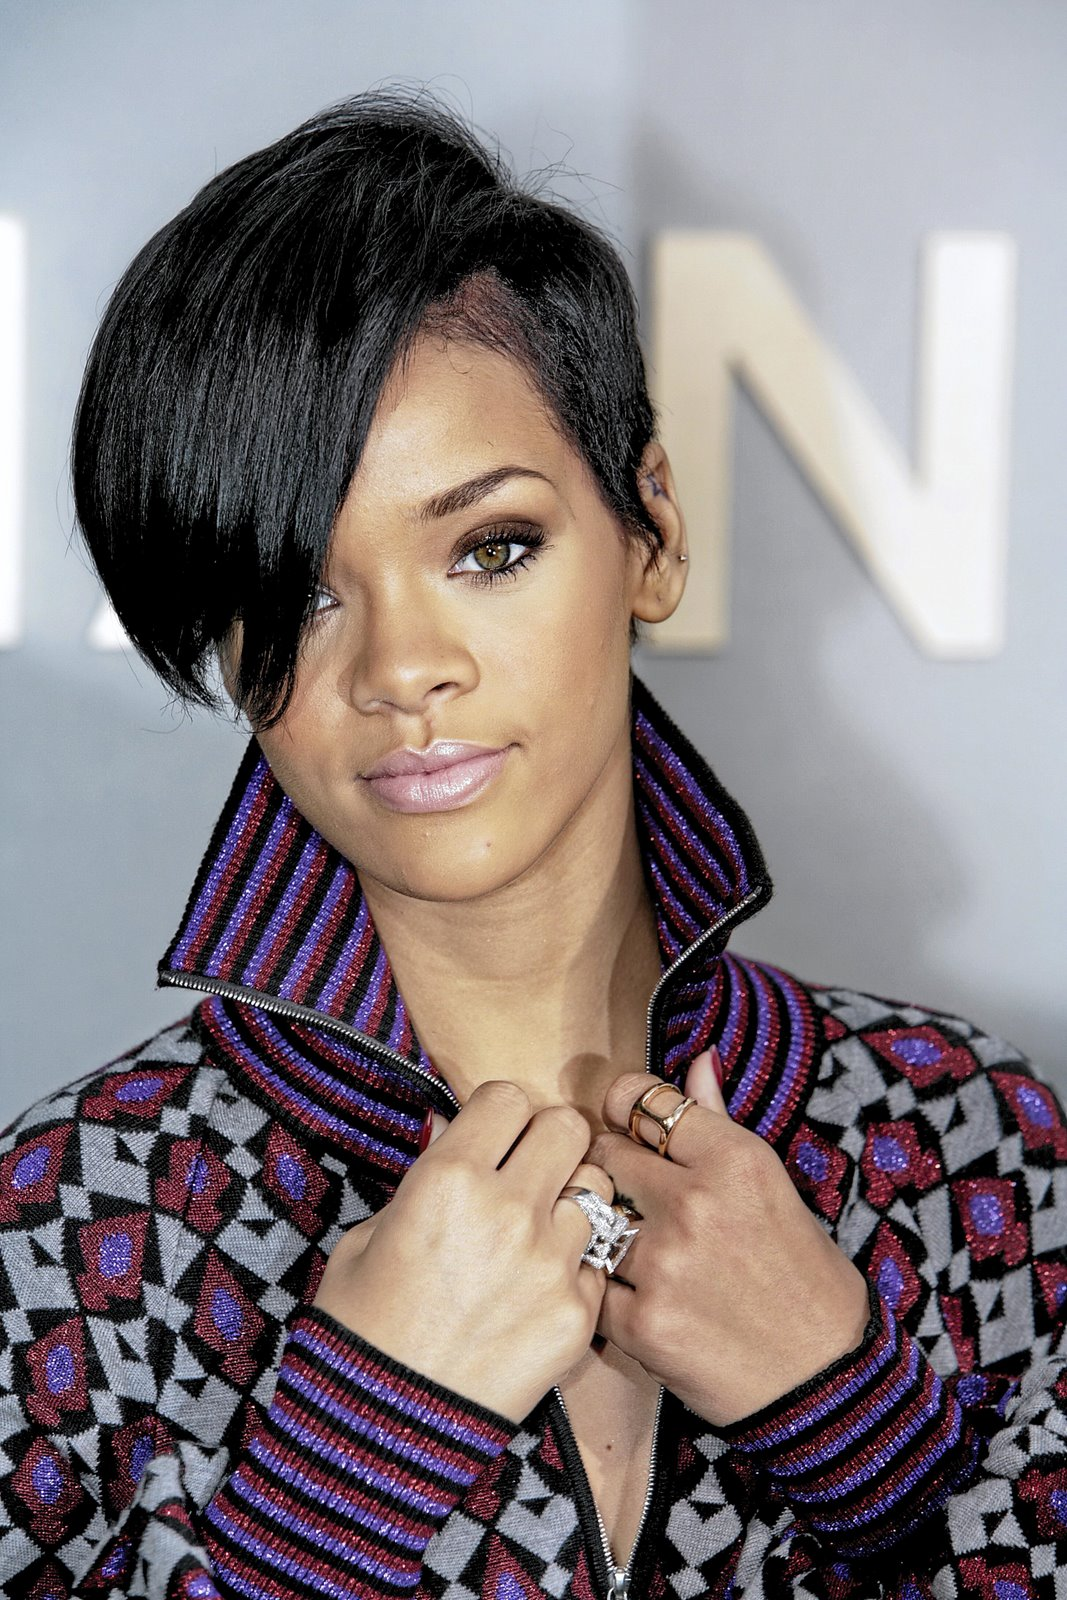 rihanna hairstyle 30 Beautiful Black Girl Hairstyles. 1067 x 1600.Hairstyles Big Foreheads Women